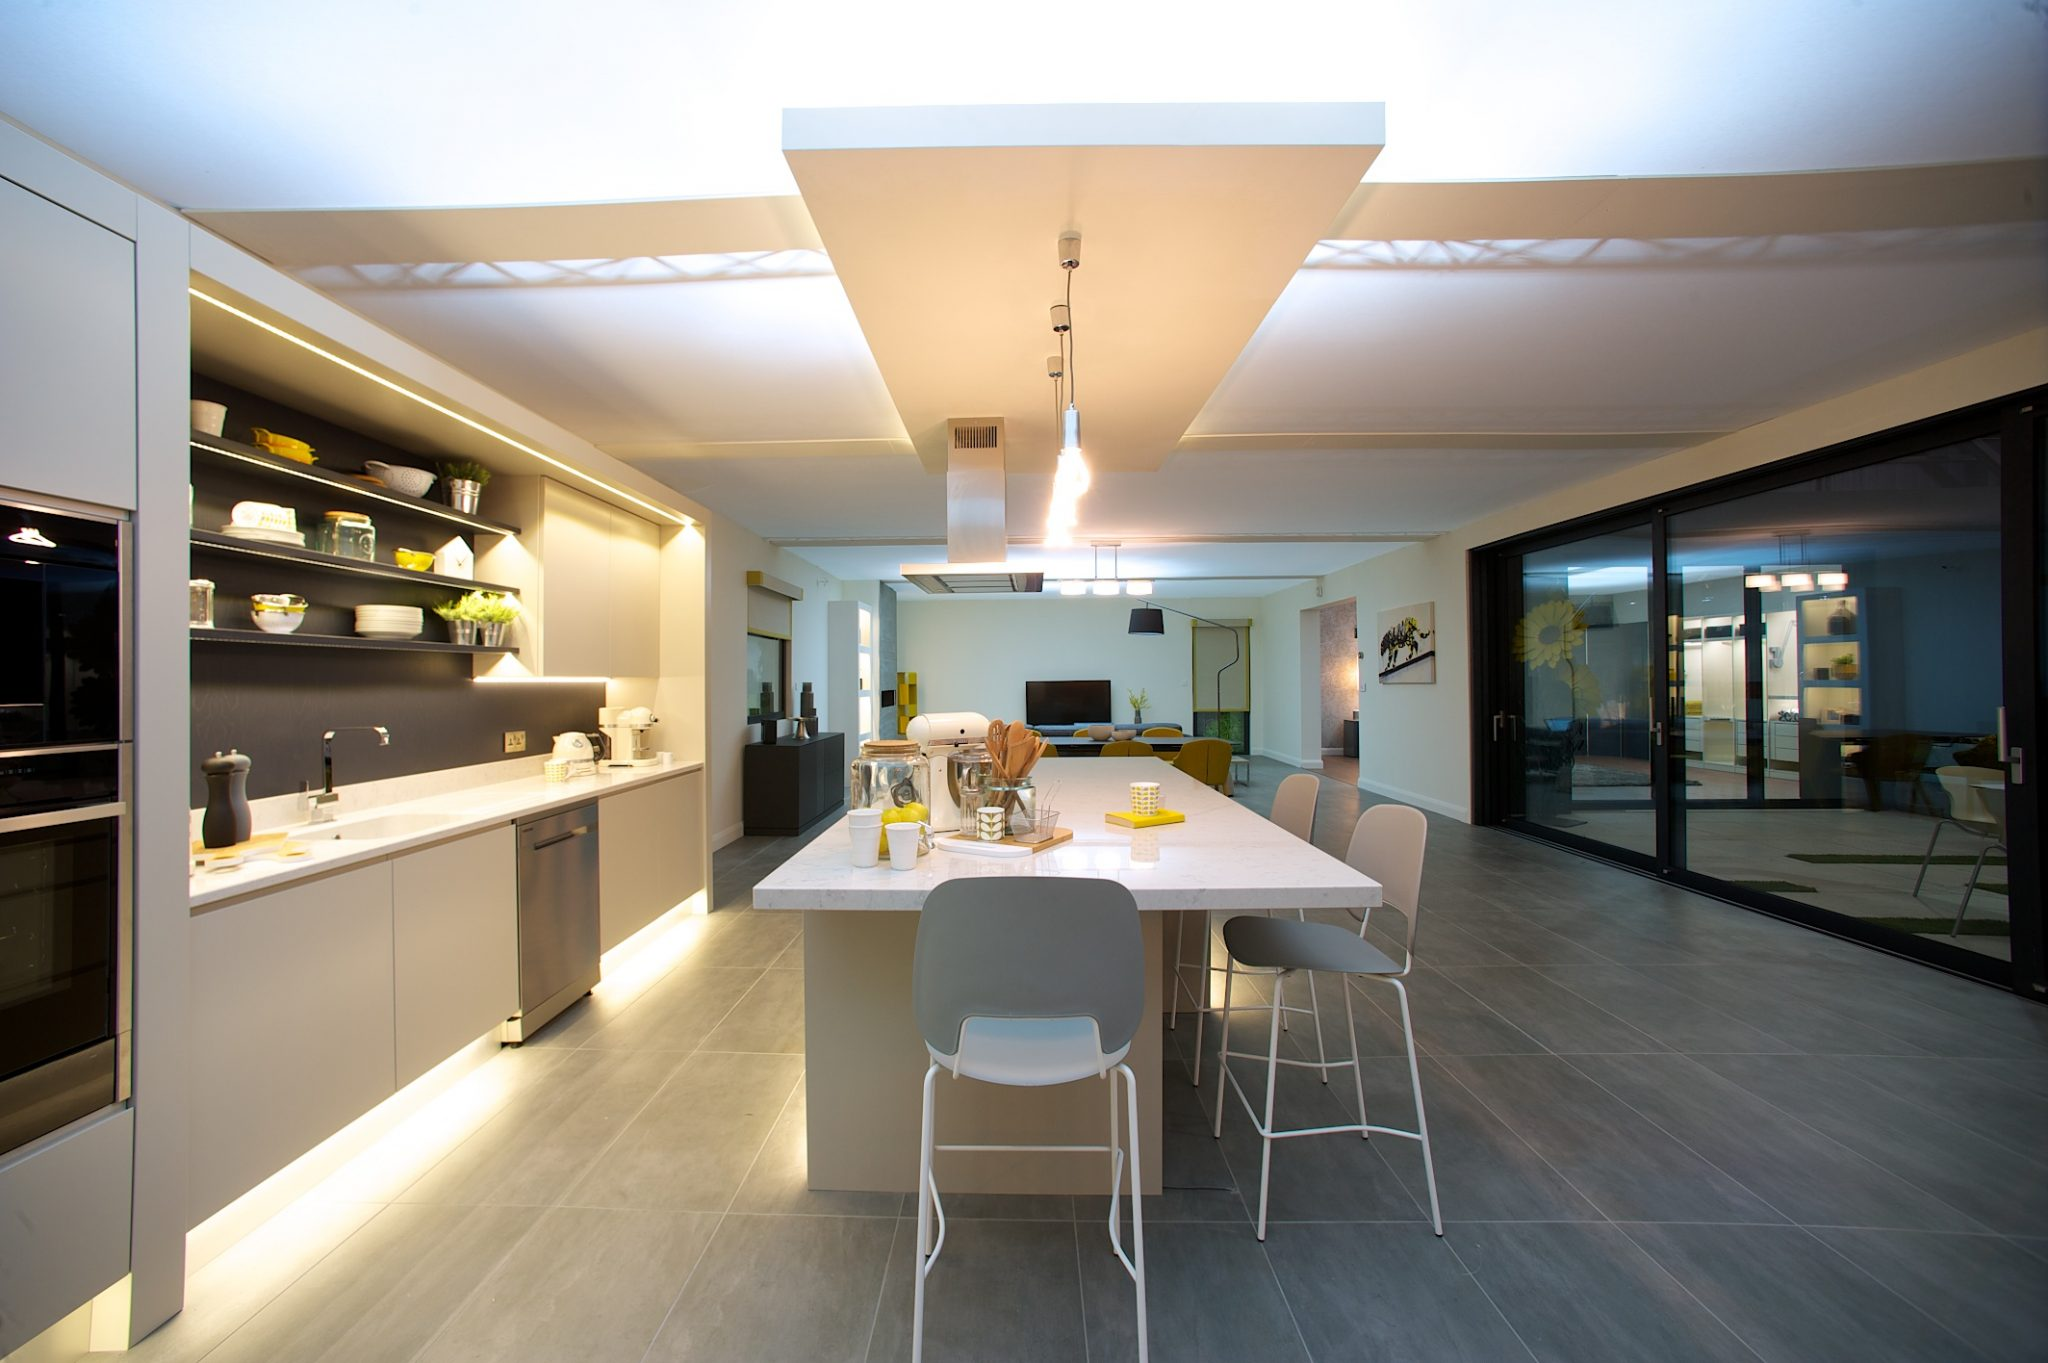 Enigma design ideal home show house kitchen enigma design 2 - Show picture of kitchen ...